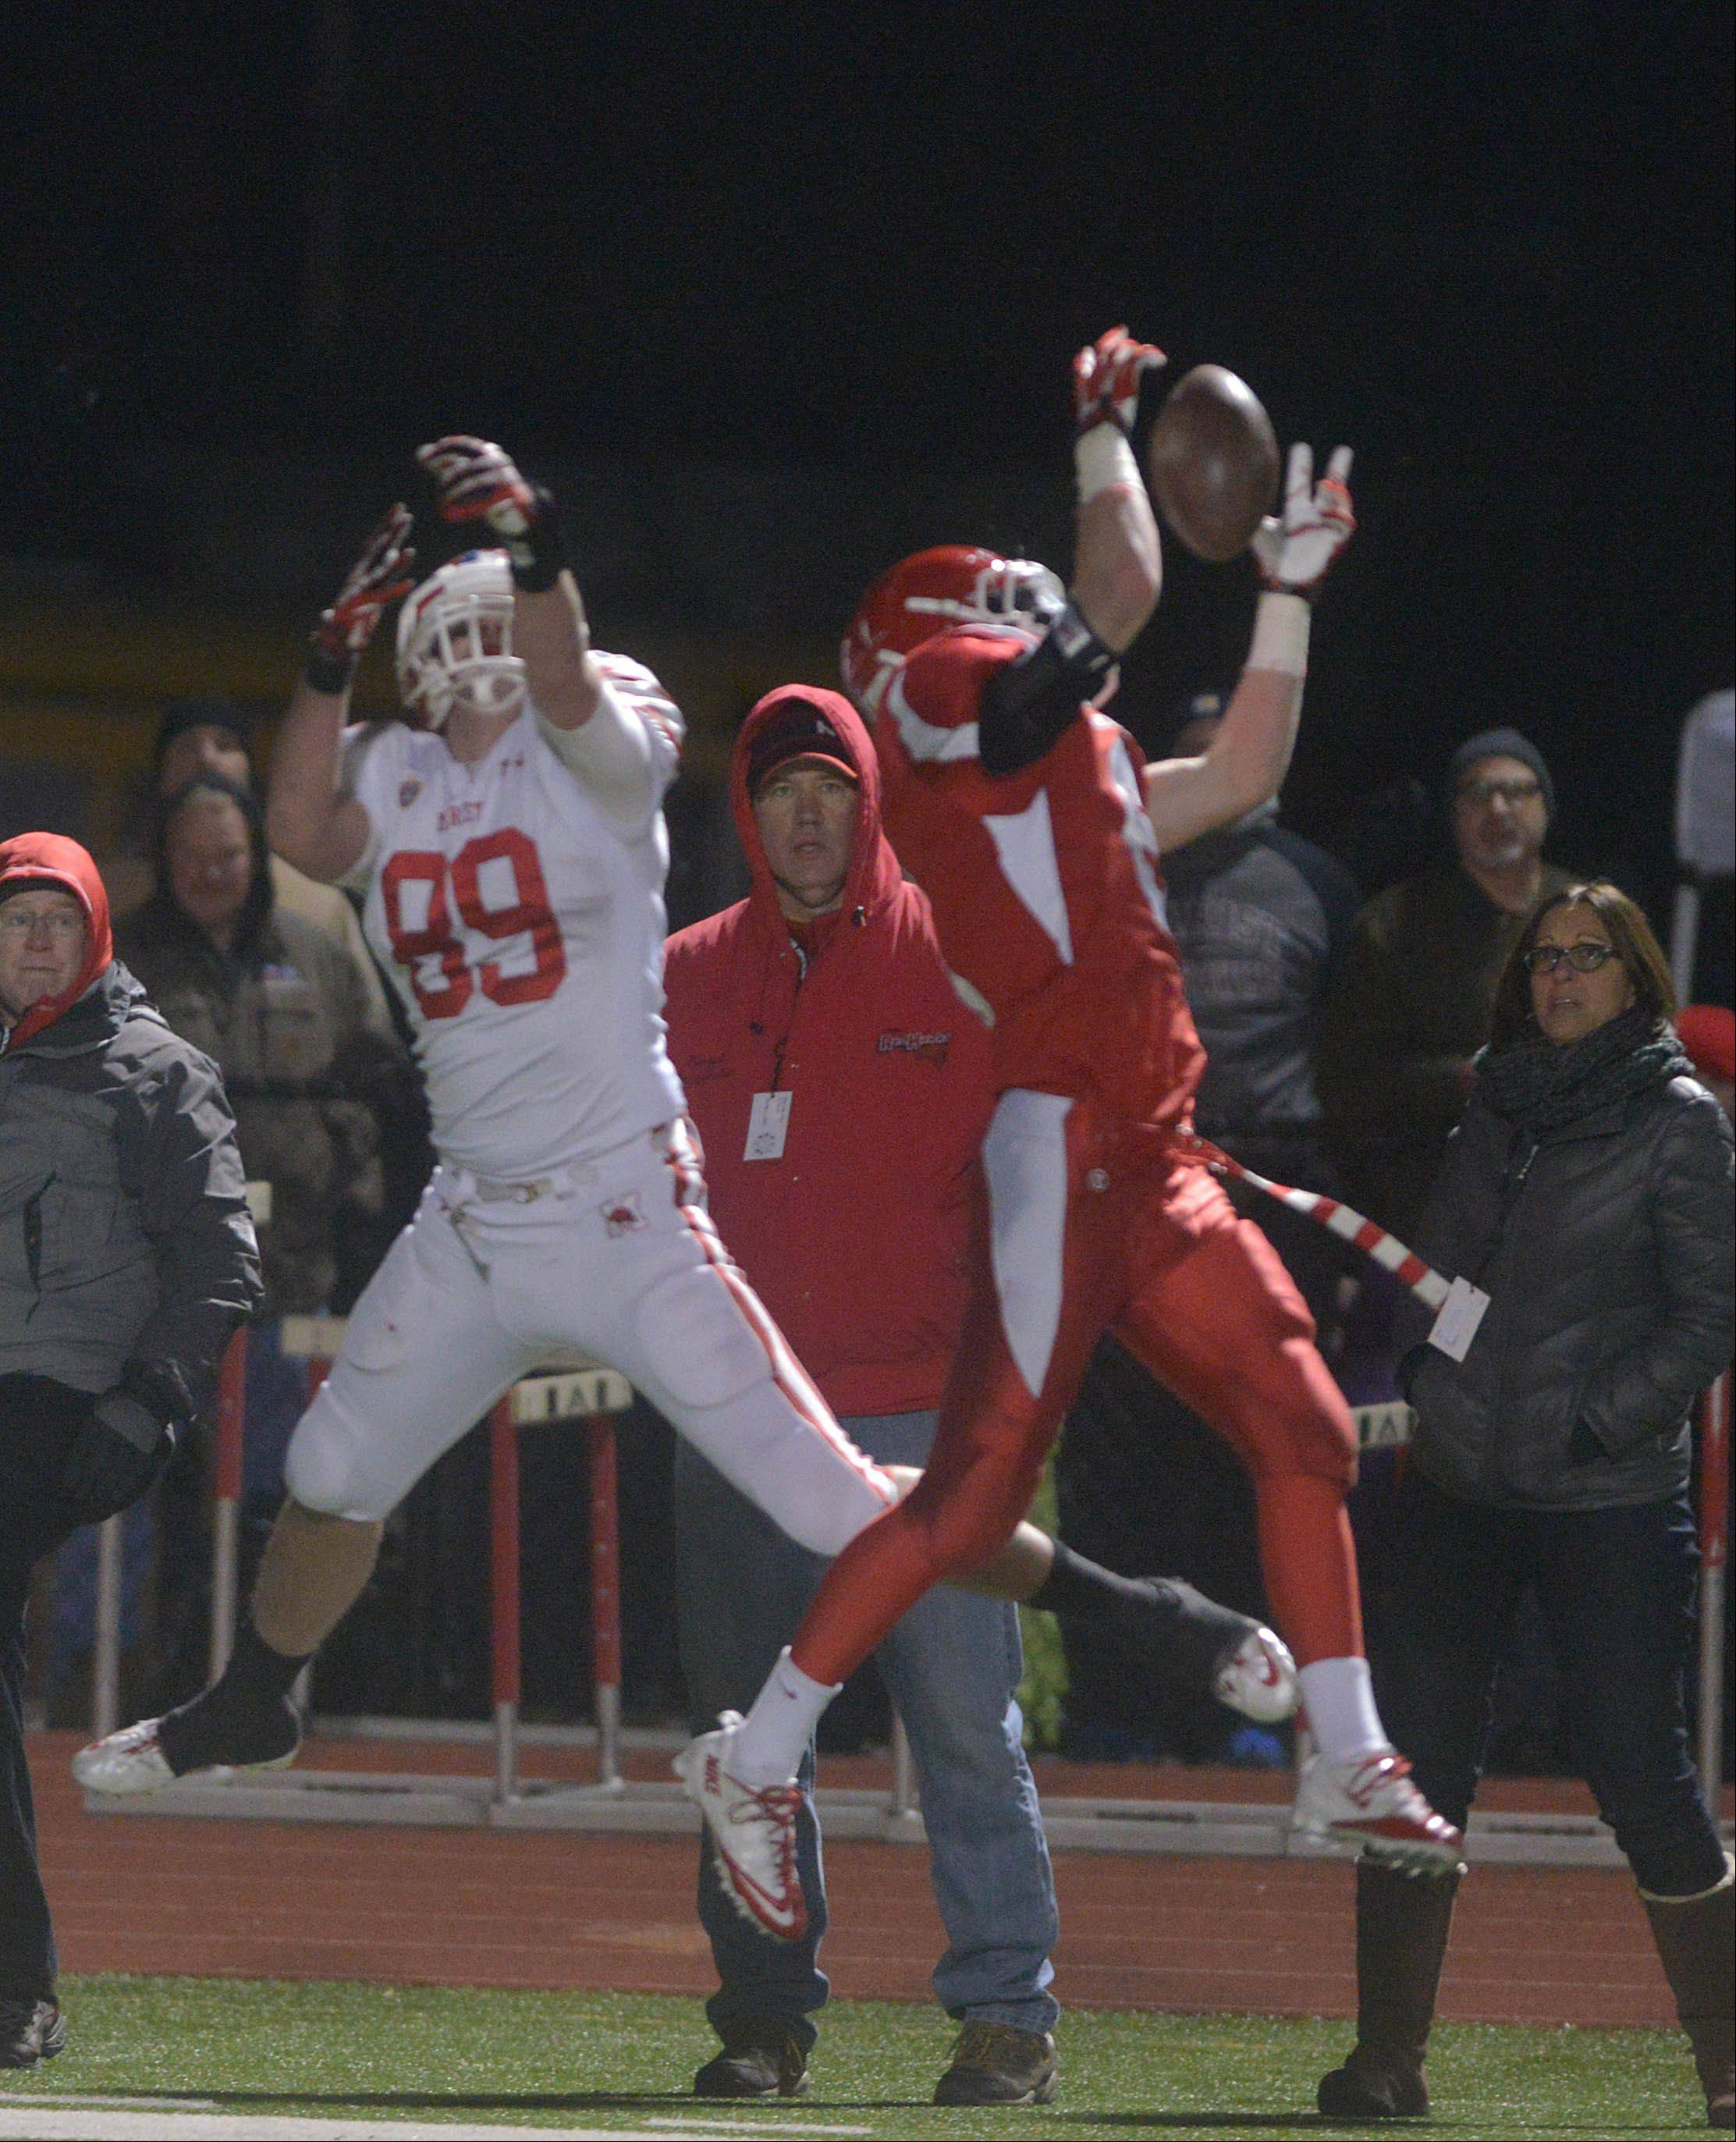 Nic Weishar of Marist,left, and Dillon Grooss go up for a pass during the Marist at Naperville Central football Class 8A semifinal Saturday.